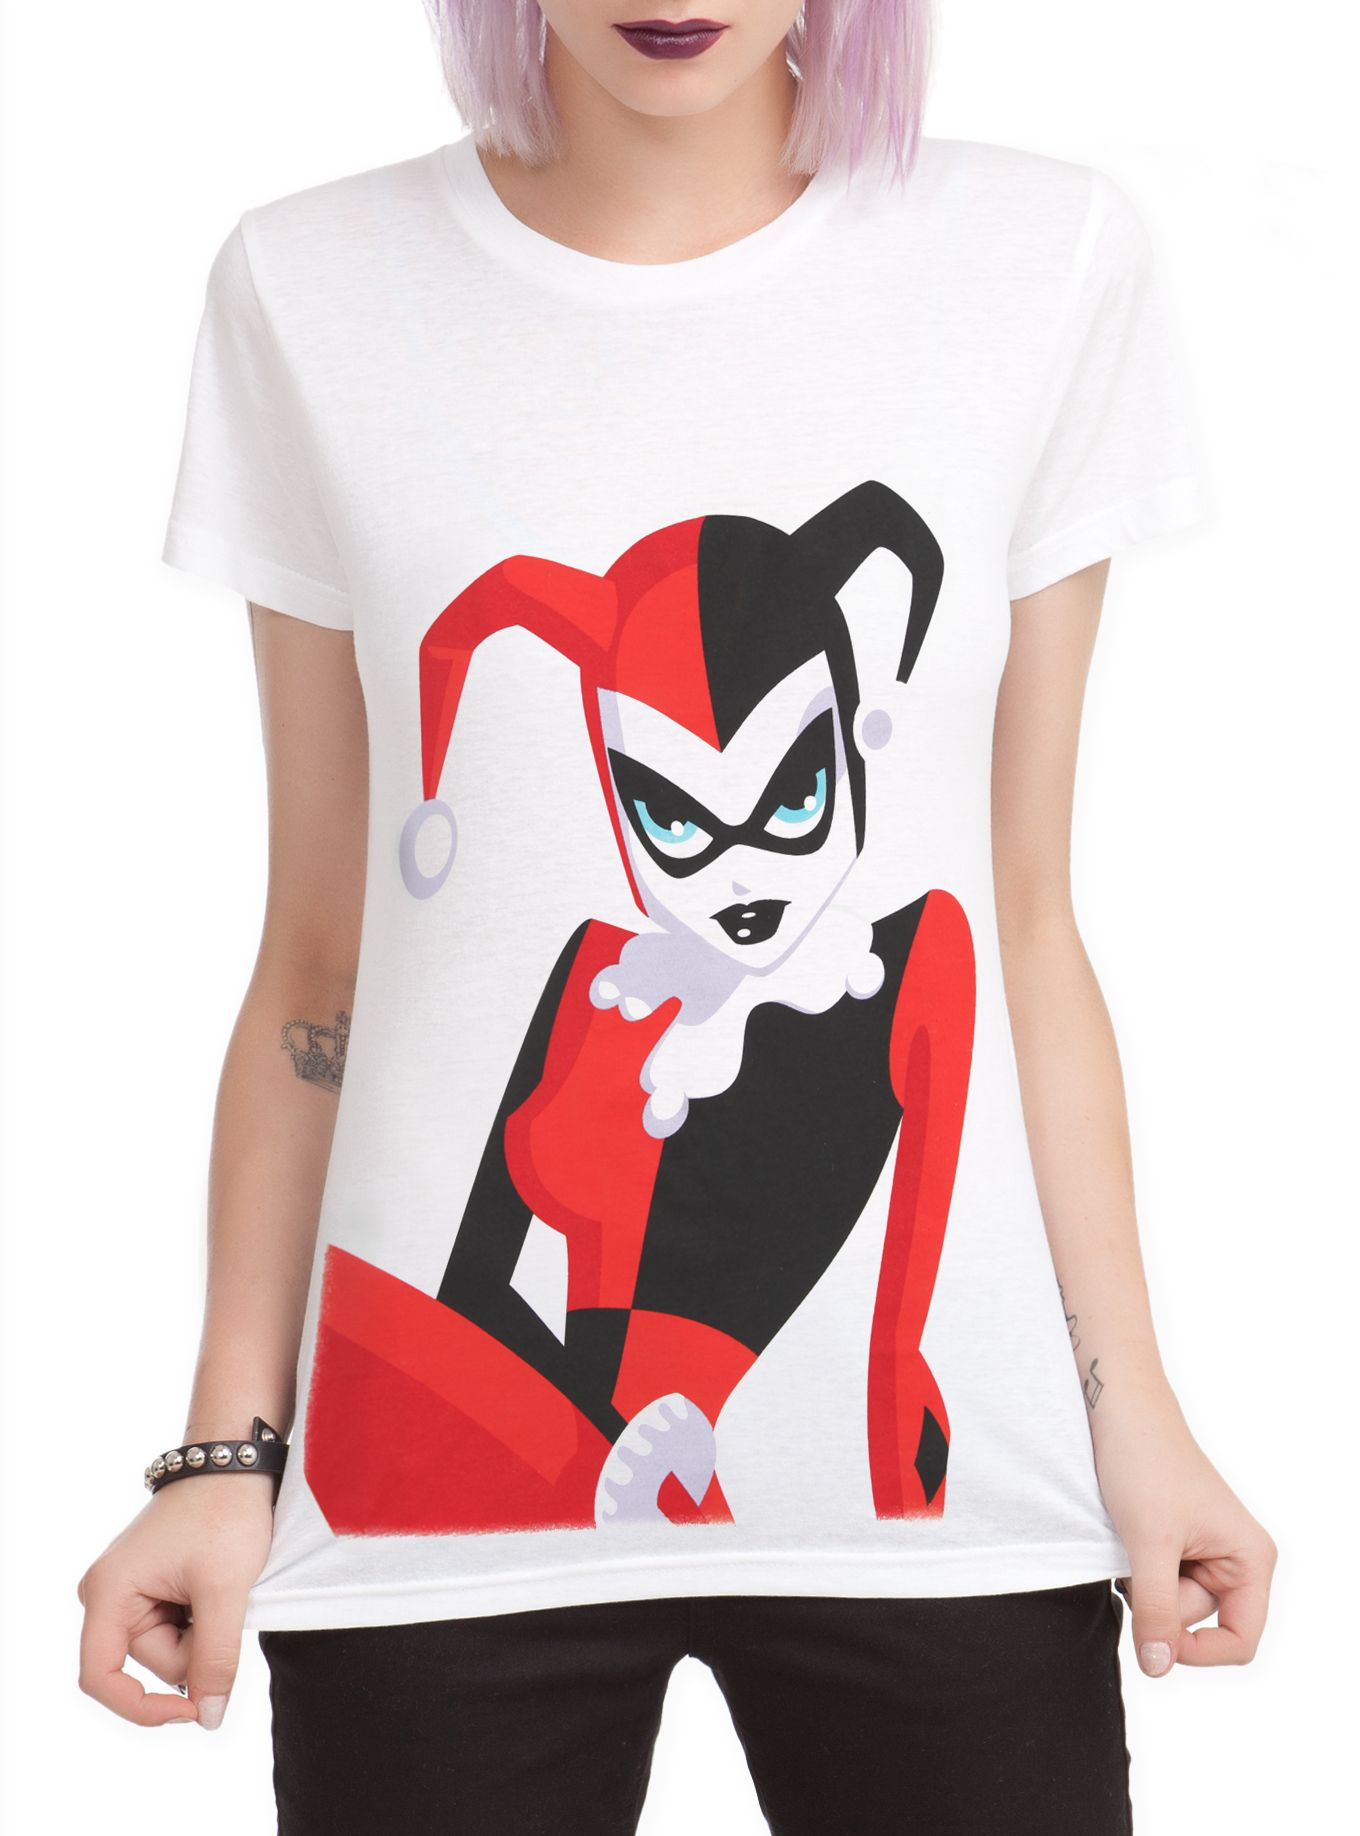 OFFICIAL Harley Quinn Costumes, Shirts & Merchandise   Hot Topic